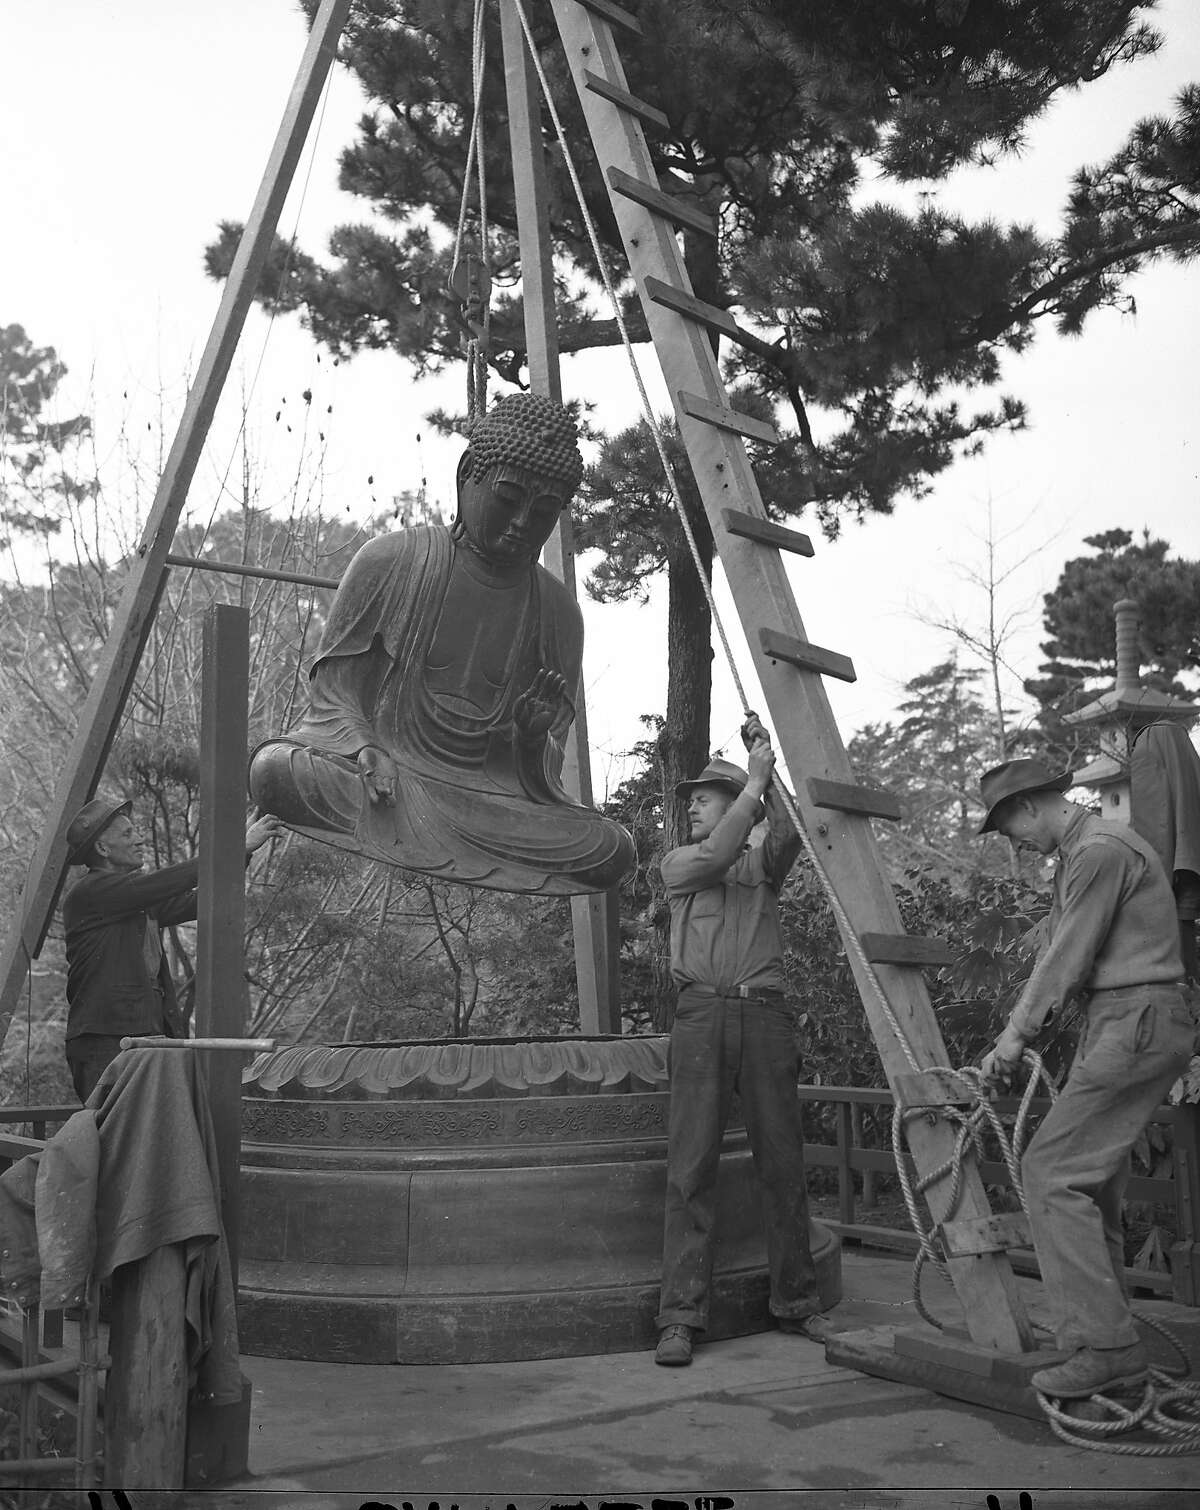 The Buddha at the Japanese Tea Garden in Golden Gate Park being installed in March 1949. It was a gift from the Gump family, and had been in their store for 15 years. photo dated 03/02/1949